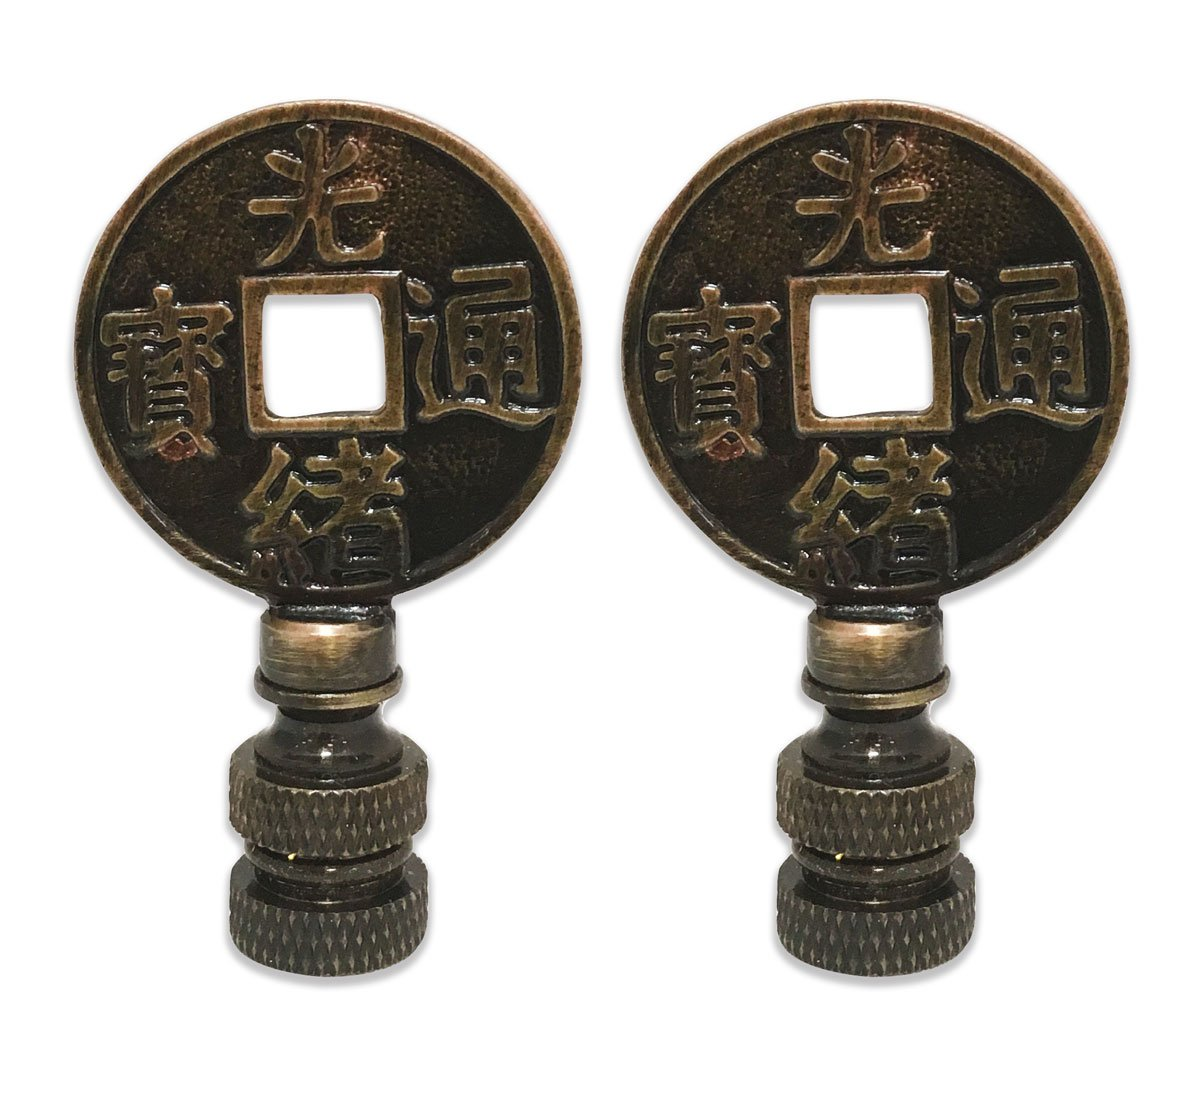 Royal Designs Asian Symbols Lamp Finial for Lamp Shade- Antique Brass Set of 2